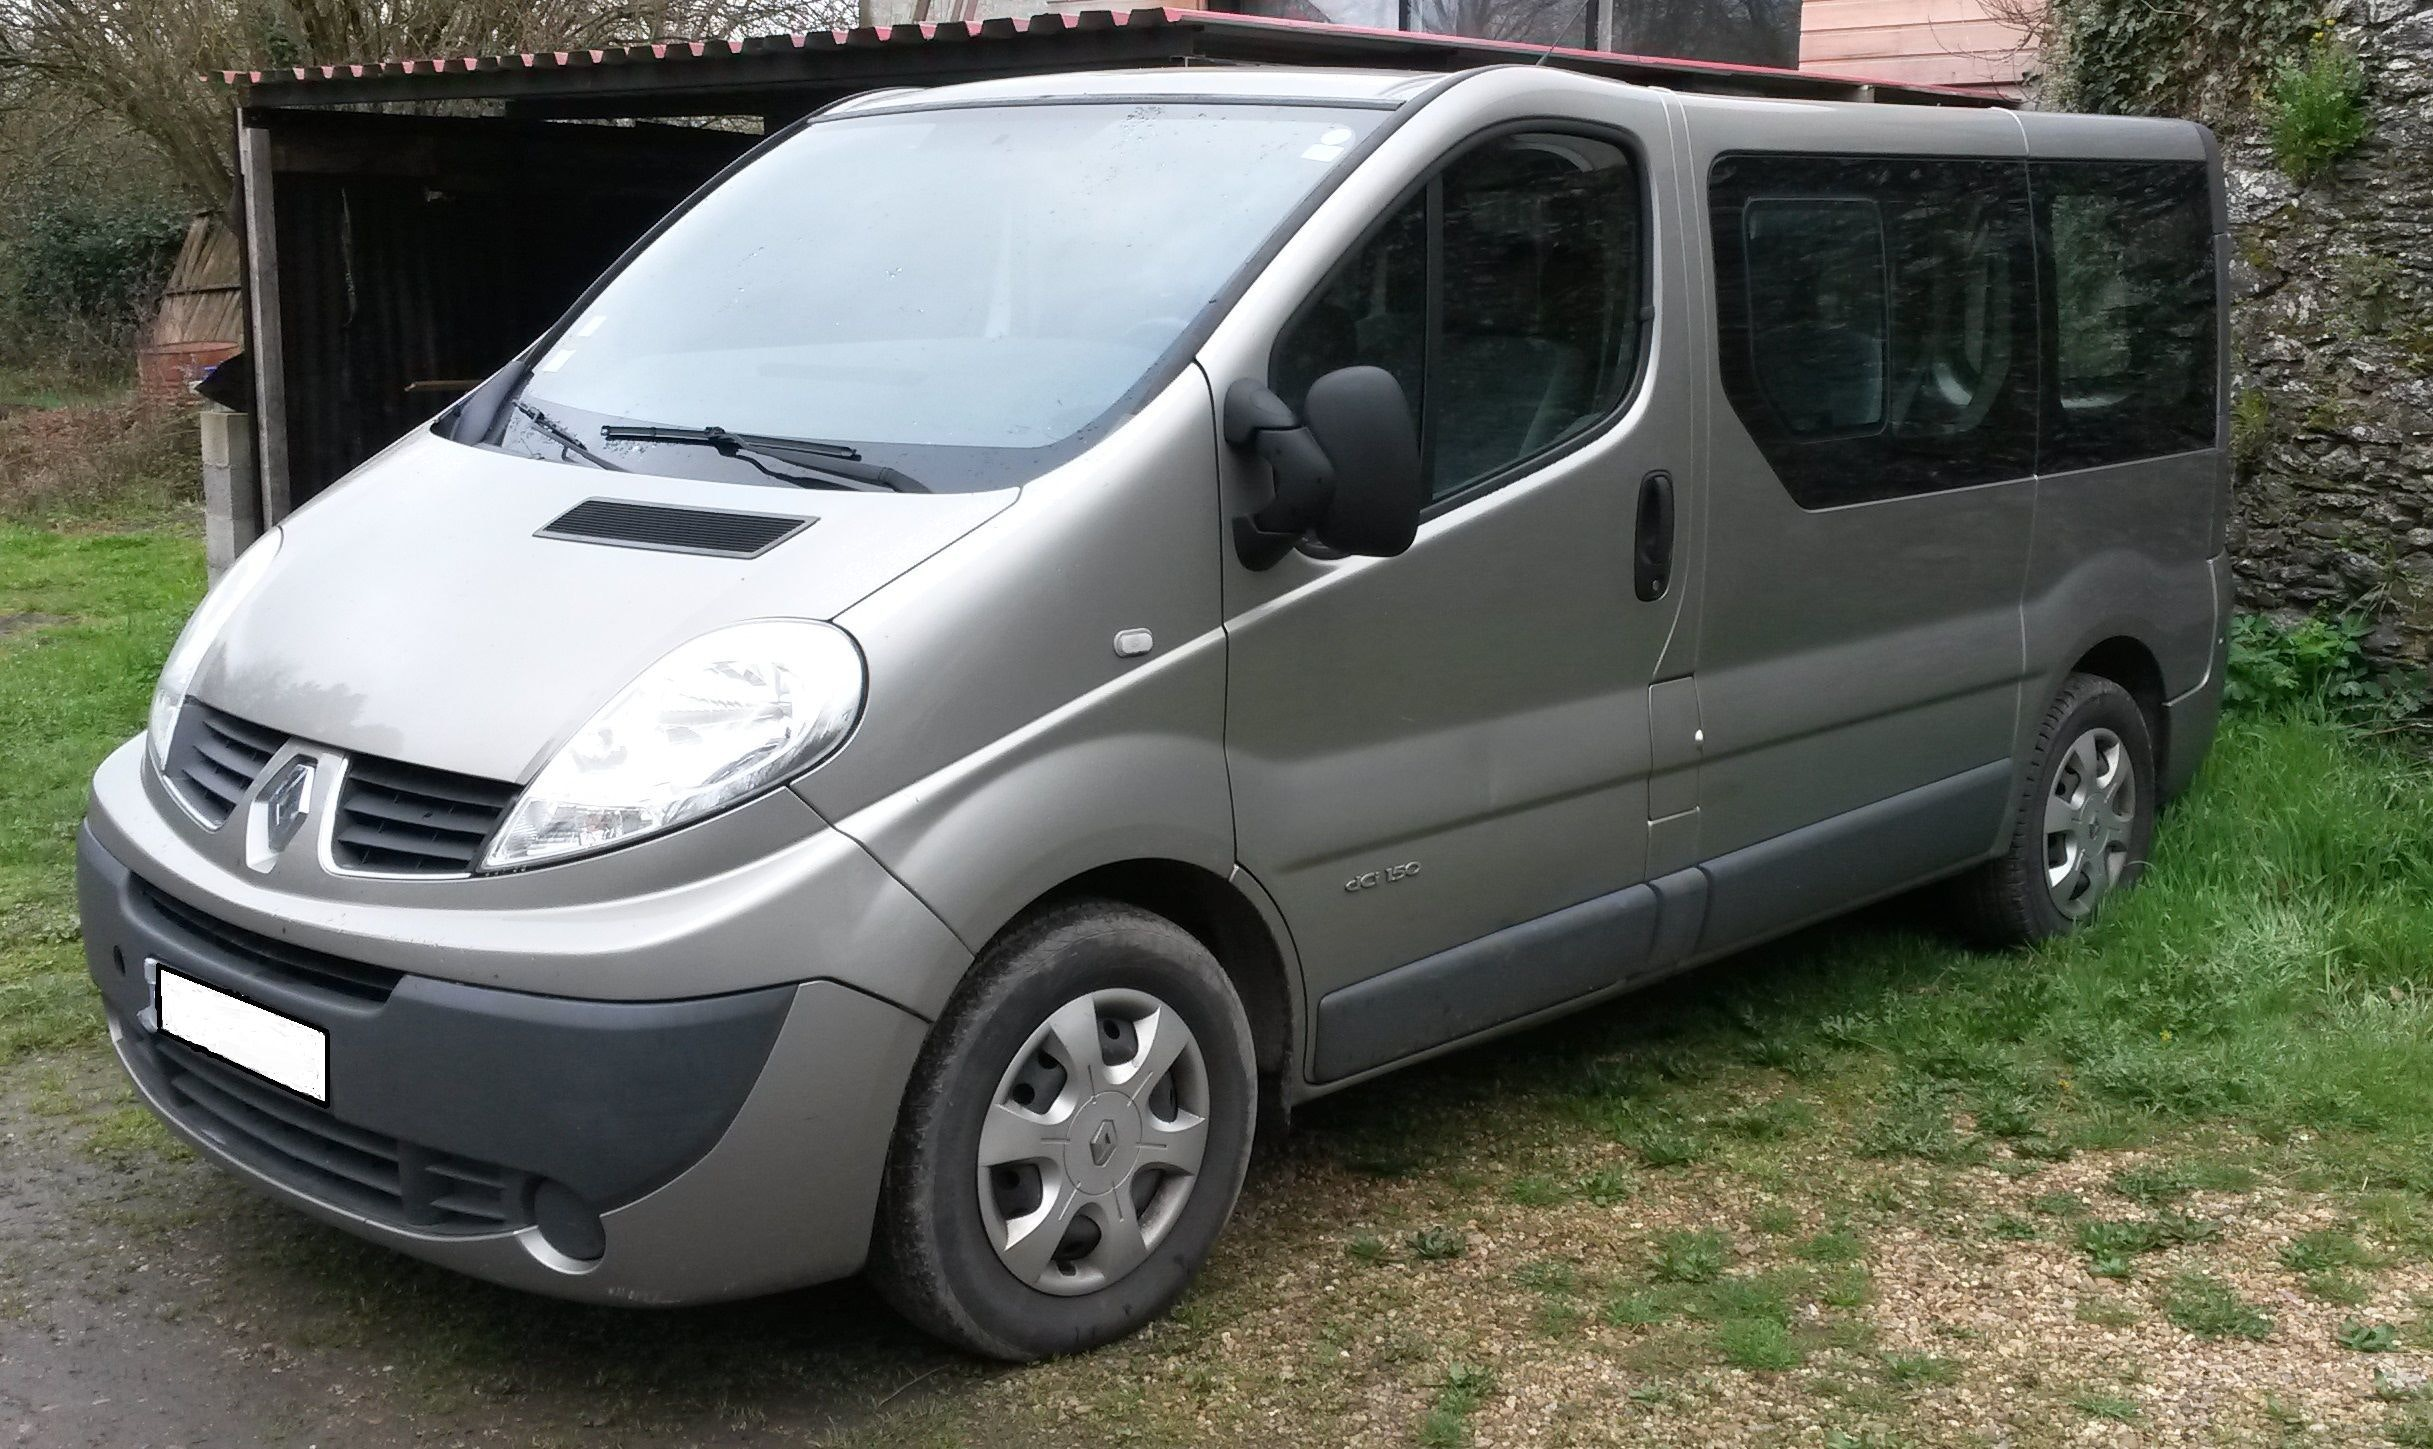 Renault Trafic Passenger 2.5 L Dci 150 CV 9 places, 2007, Diesel, 9 places et plus